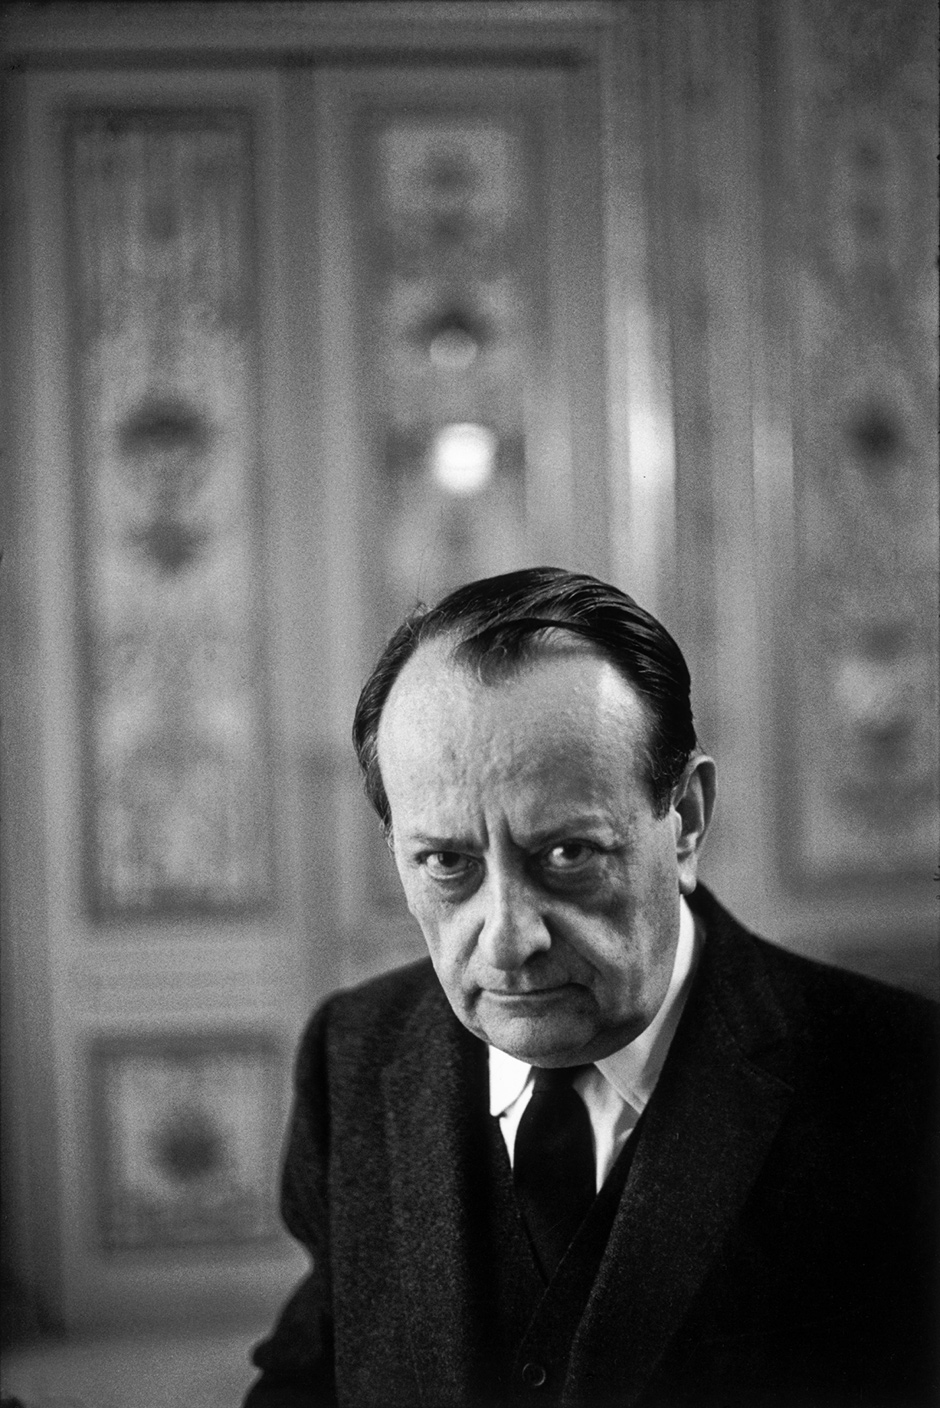 André Malraux, France's first minister of culture, Paris, 1968; photograph by Henri Cartier-Bresson